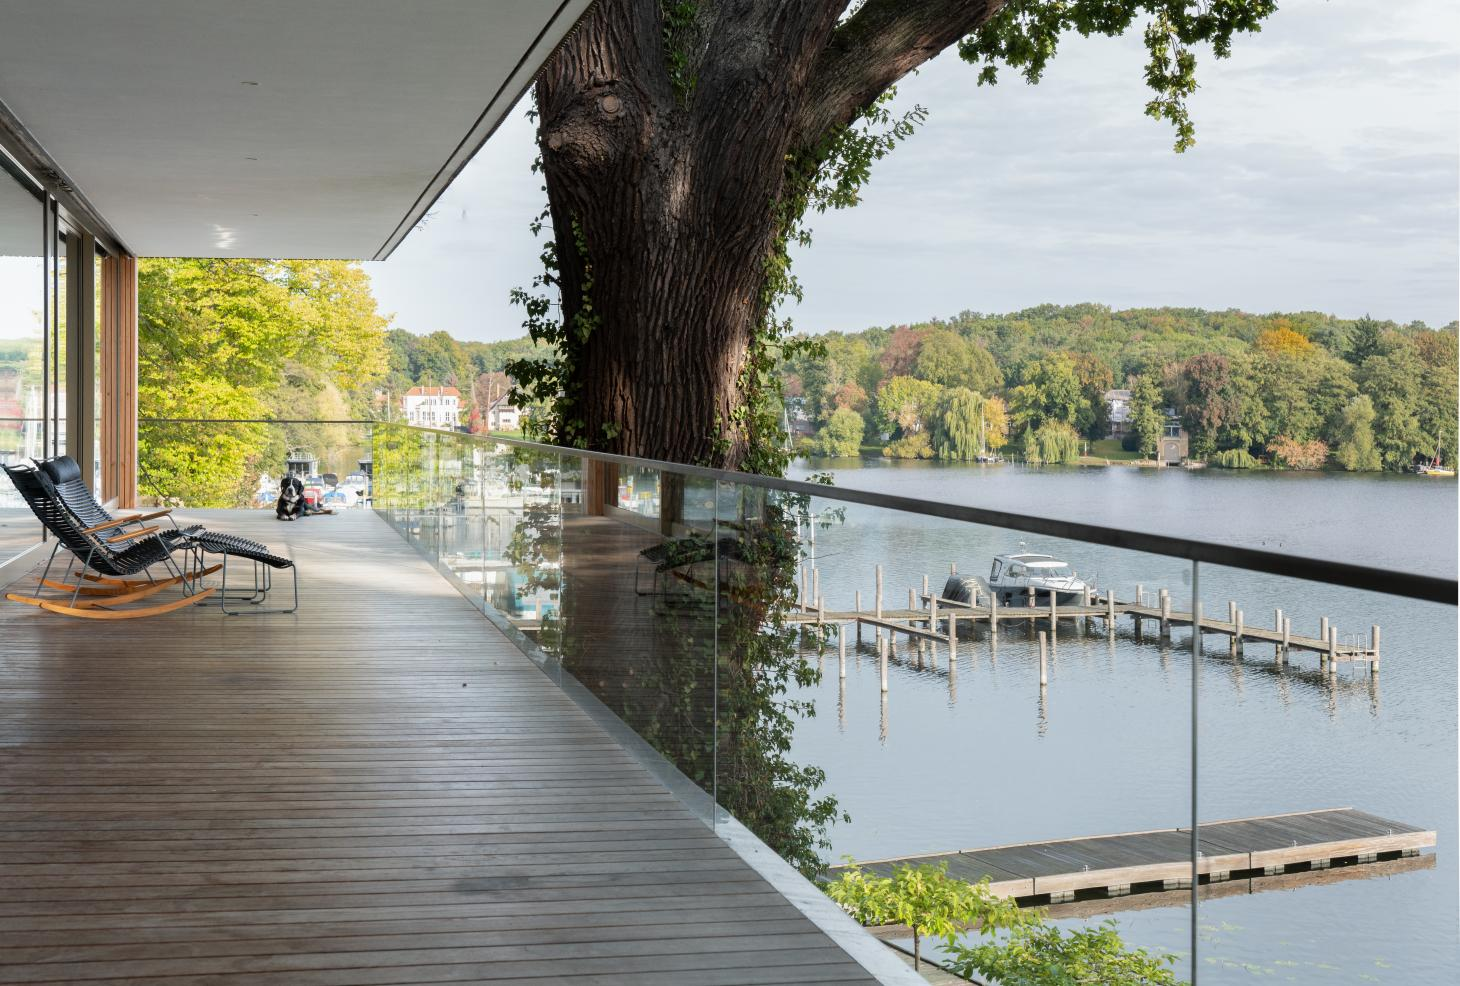 The expansive lakeside terrace at Carlos Zwick's new family house on Lake Jungfernsee